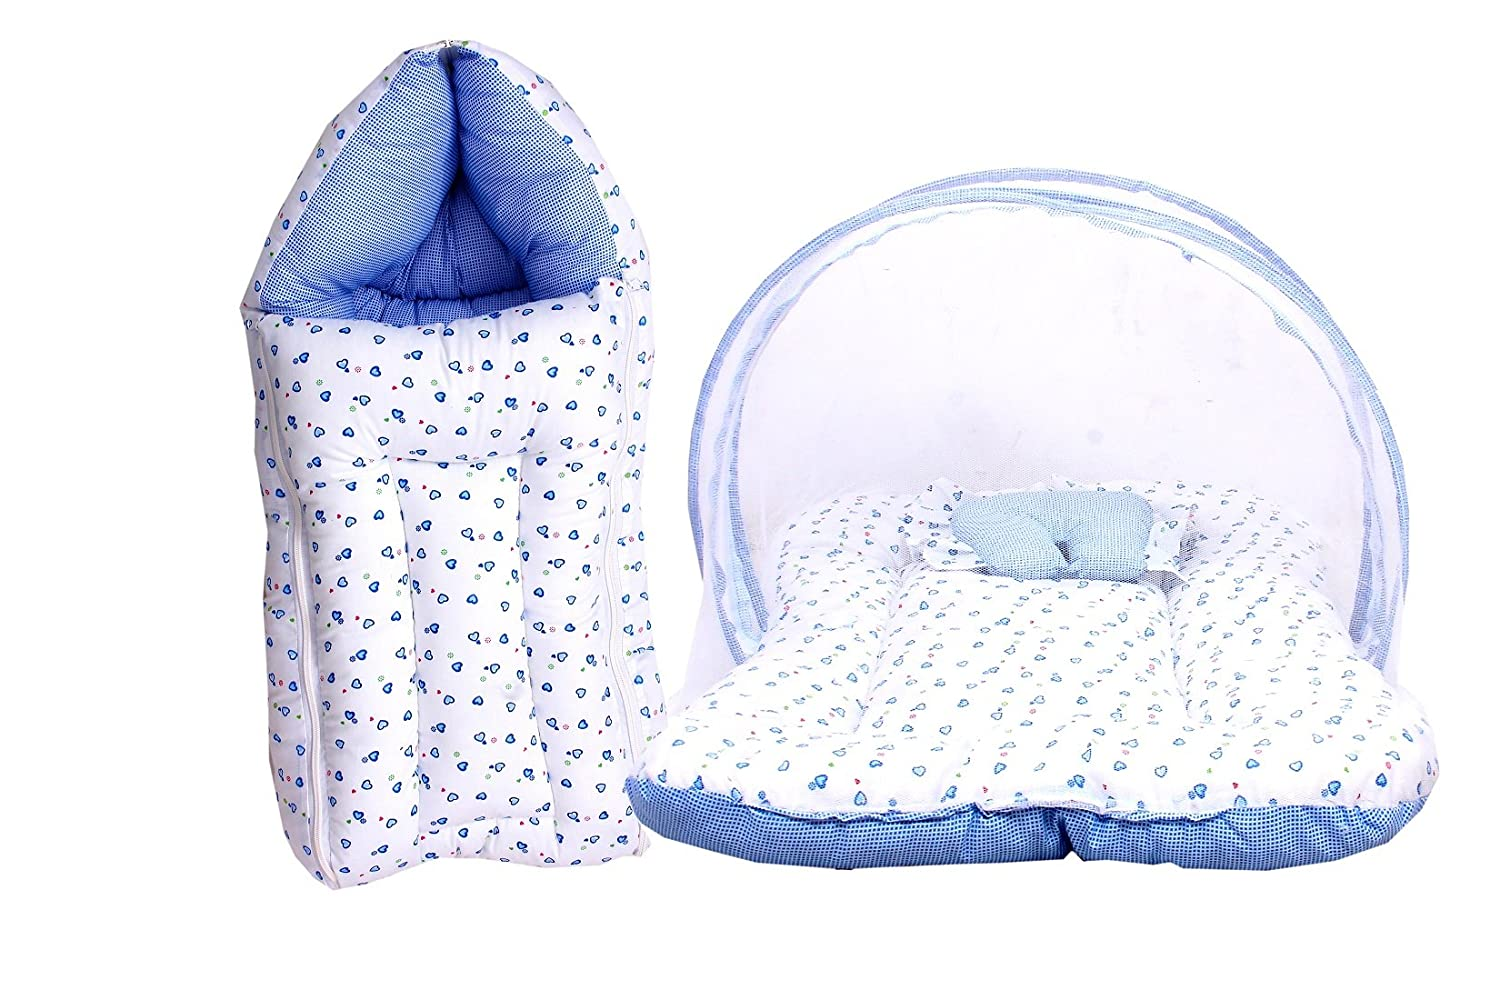 RBC Riya R Baby Fly Mattress with Mosquito Net and Sleeping